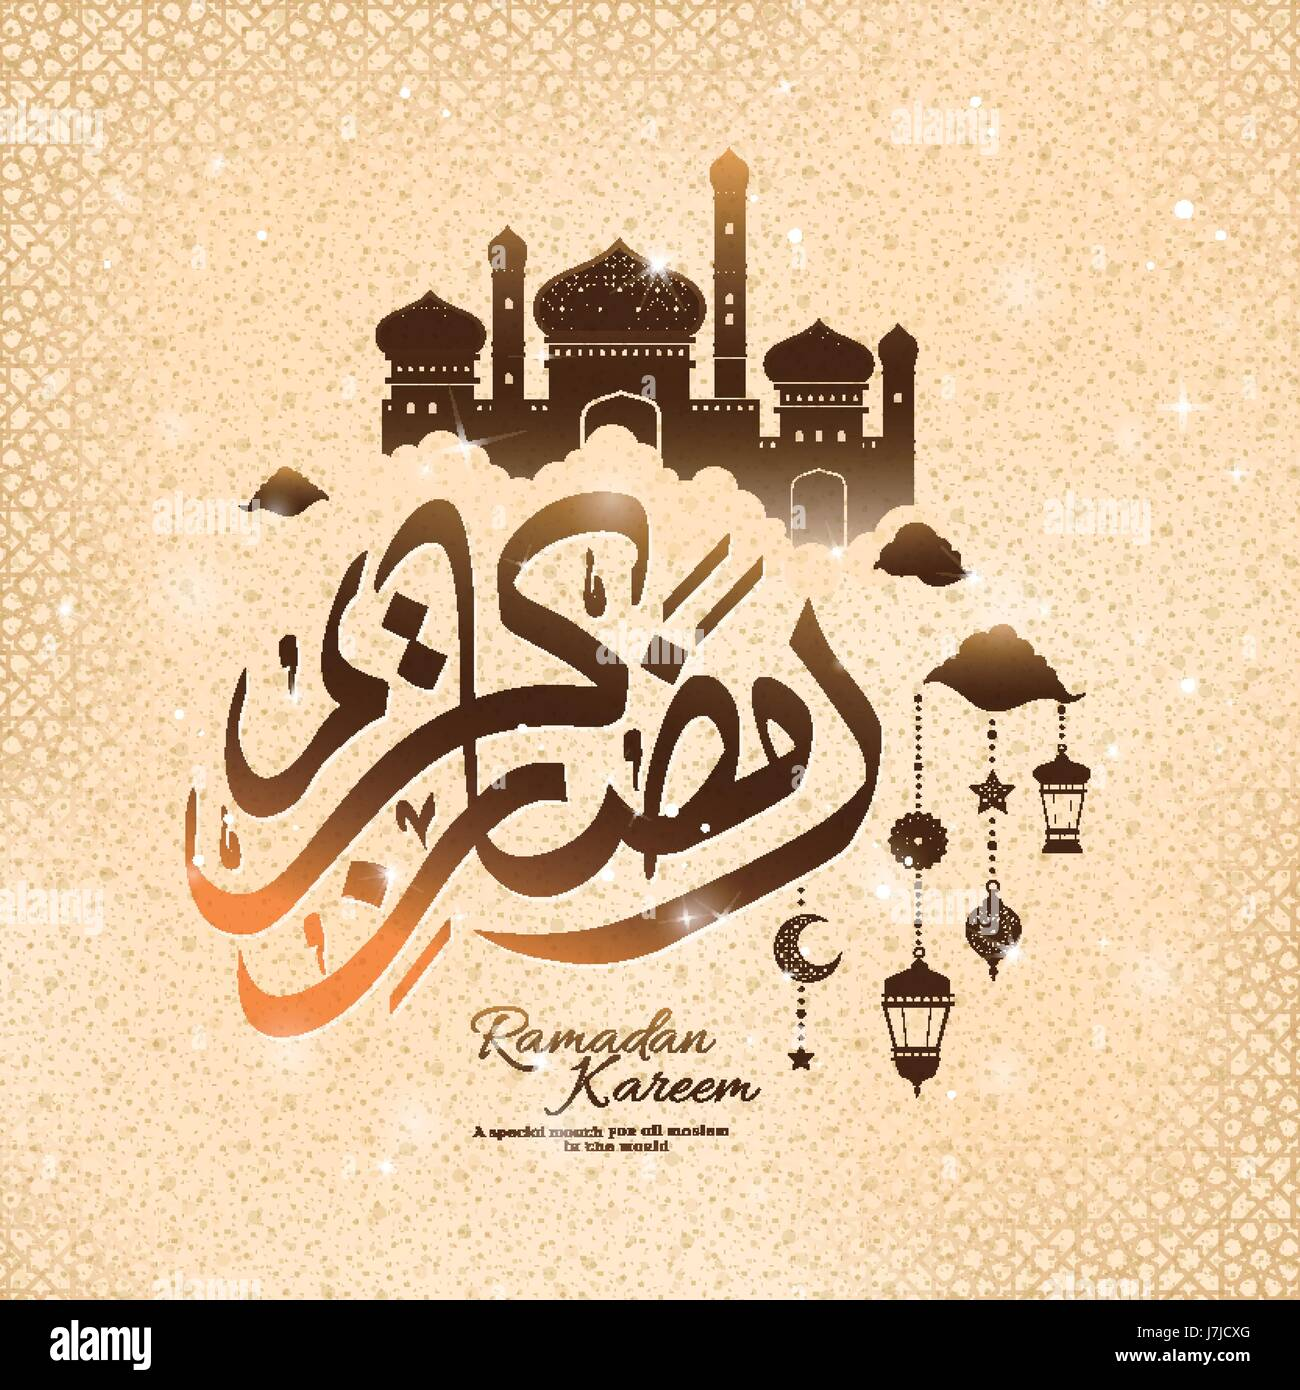 Mosque background for ramadan kareem stock photography image - Simple Ramadan Kareem Calligraphy Design With Mosque On Clouds Beige Background Stock Image